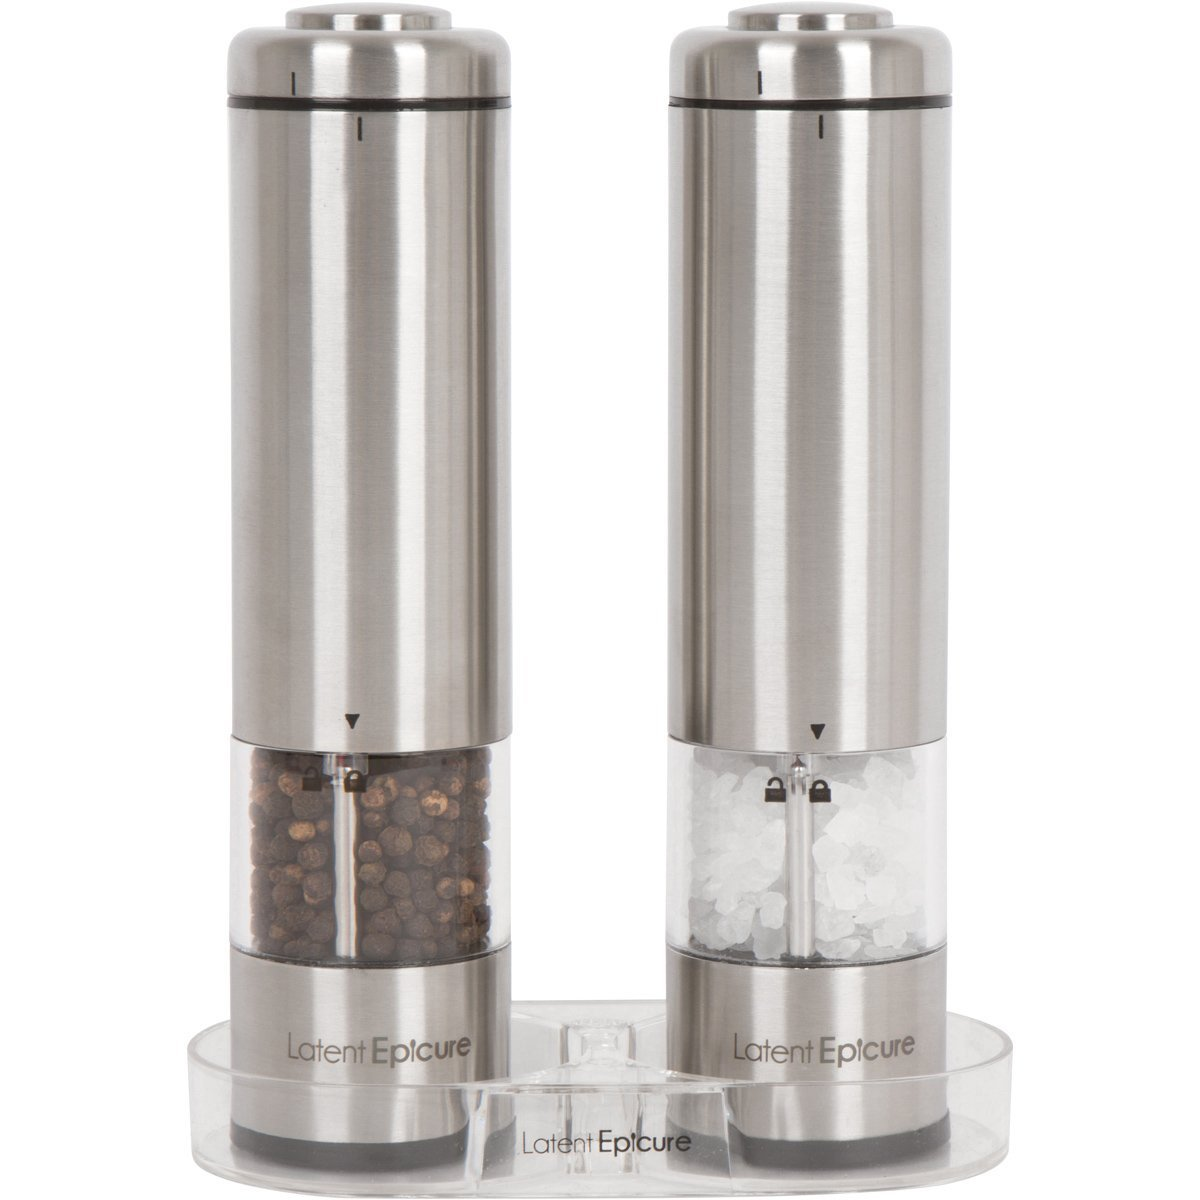 Latent Epicure Battery Operated Salt and Pepper Grinder Set (Pack of 2 Mills) - Complimentary Mill Rest | Bright Light | Adjustable Coarseness | by Latent Epicure